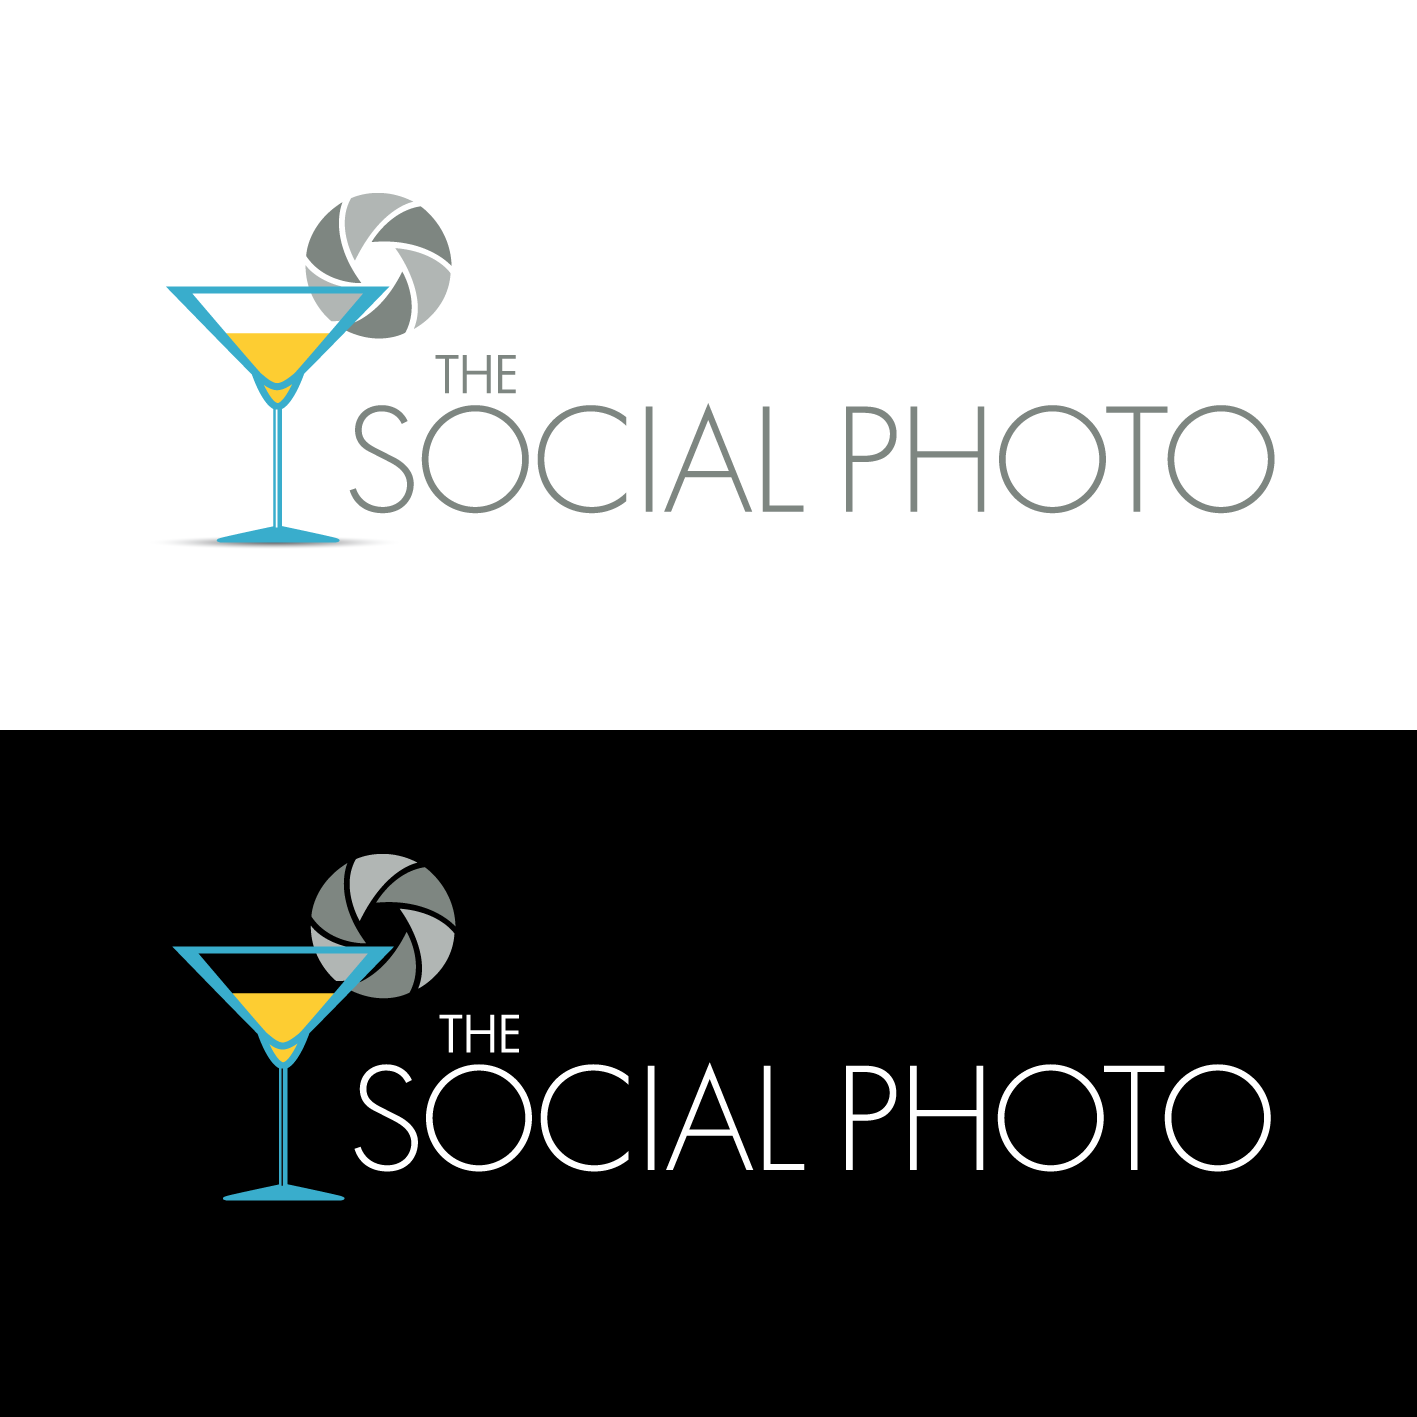 Logo Design by luna - Entry No. 23 in the Logo Design Contest New Logo Design for the social photo.